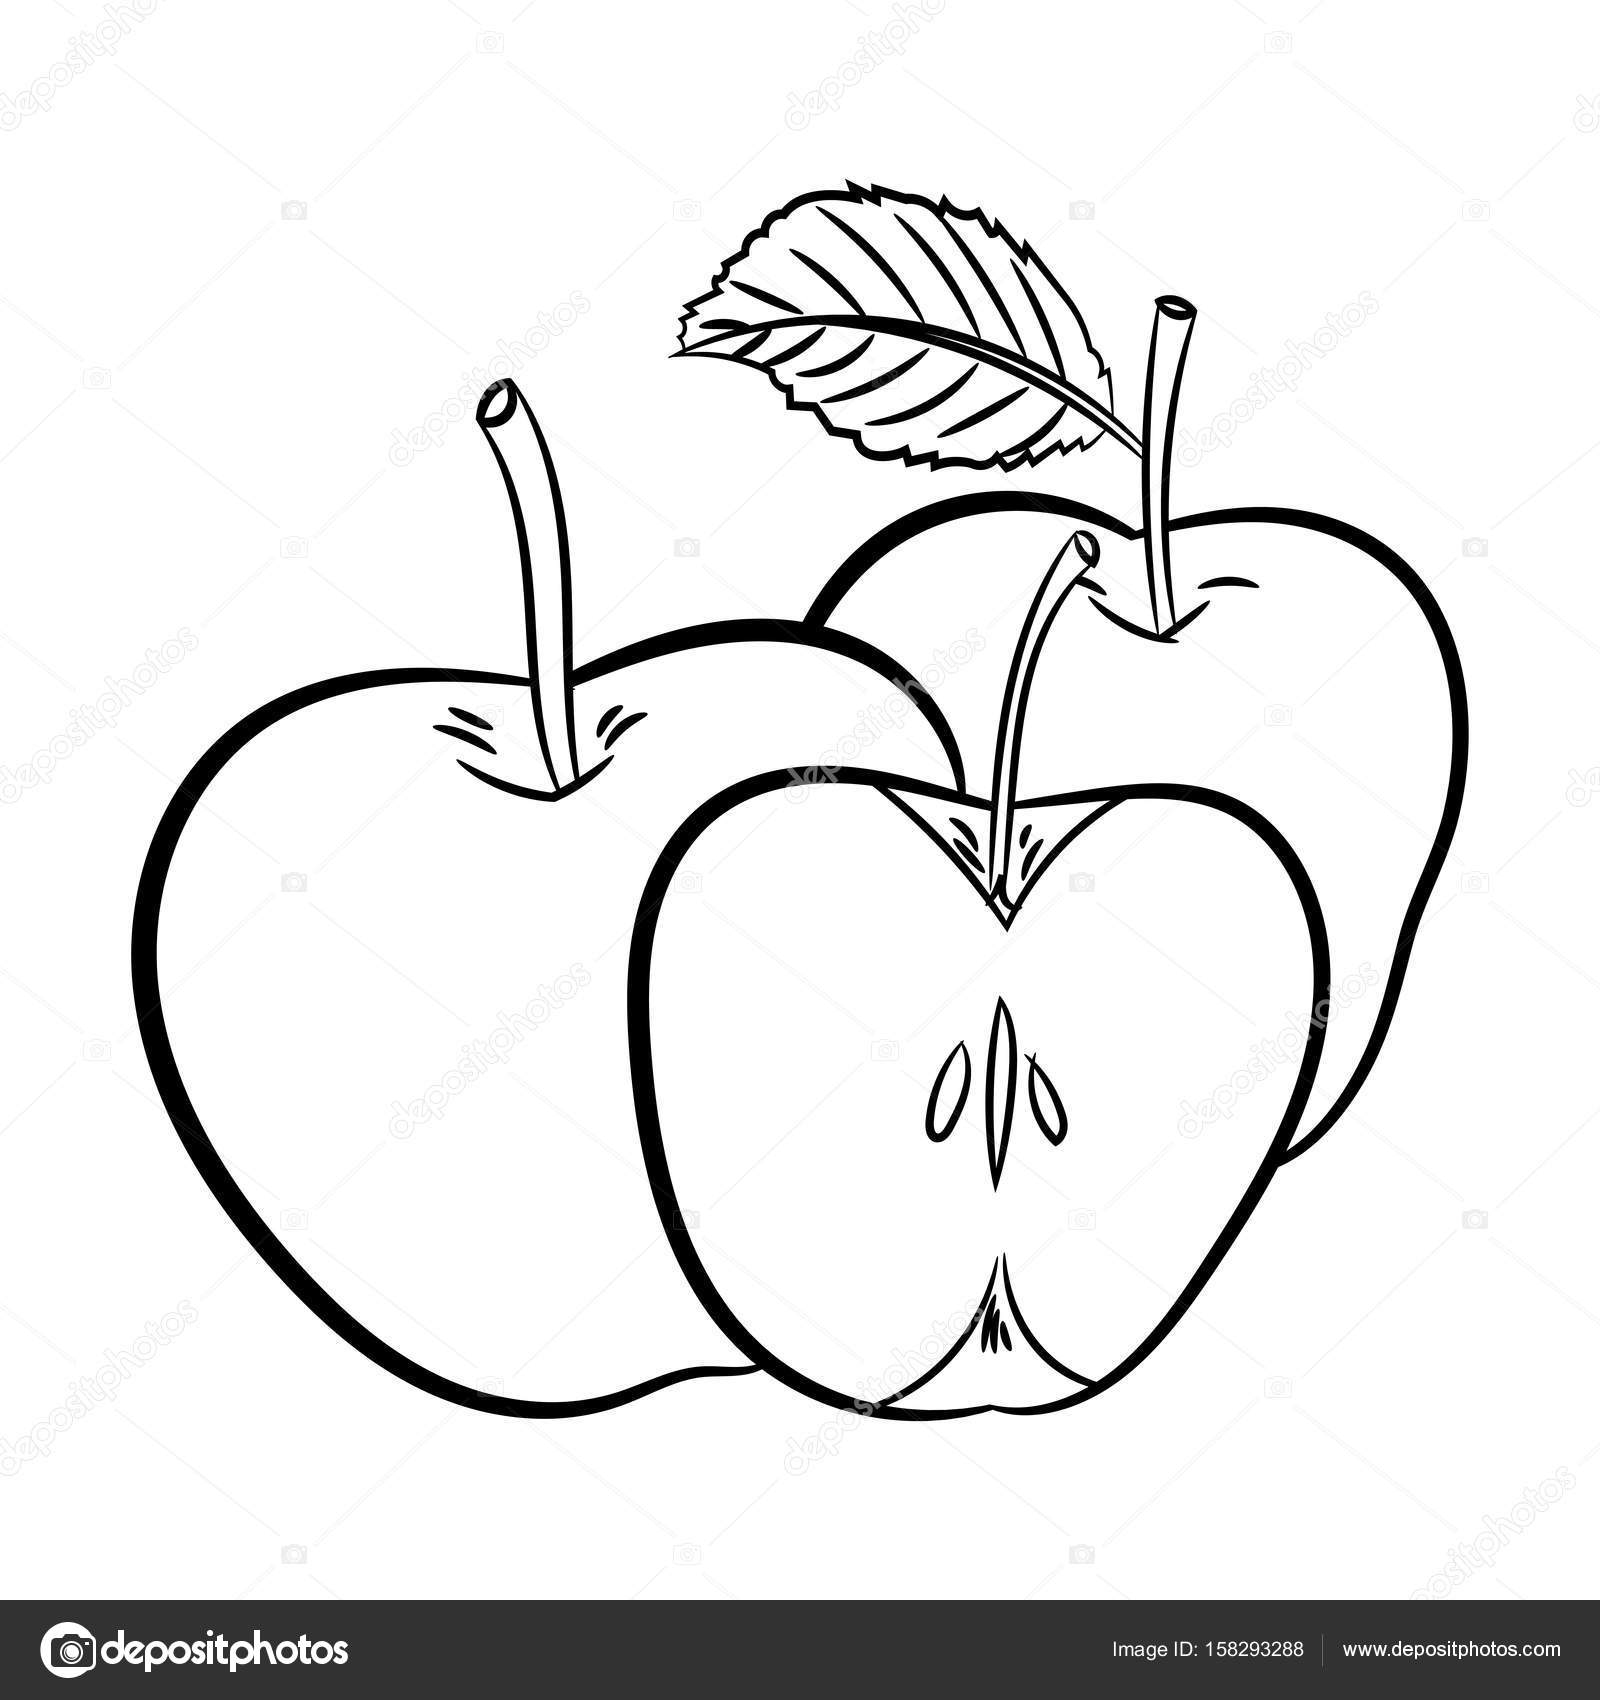 1600x1700 Line Drawing Of Apples Simple Line Vector Stock Vector